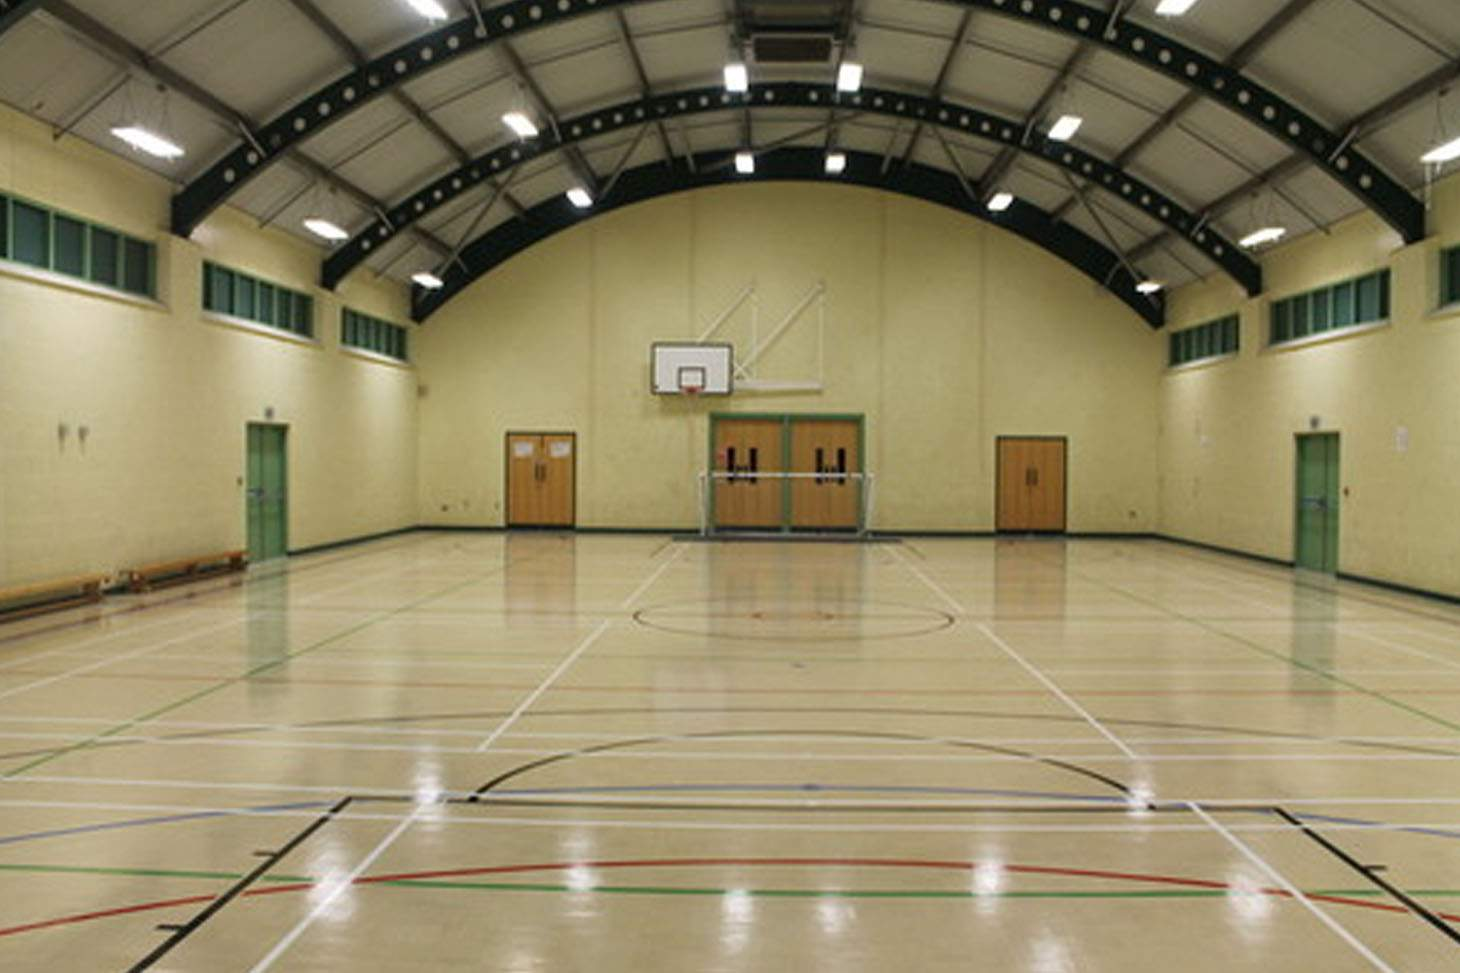 Heworth Grange Comprehensive School Indoor badminton court